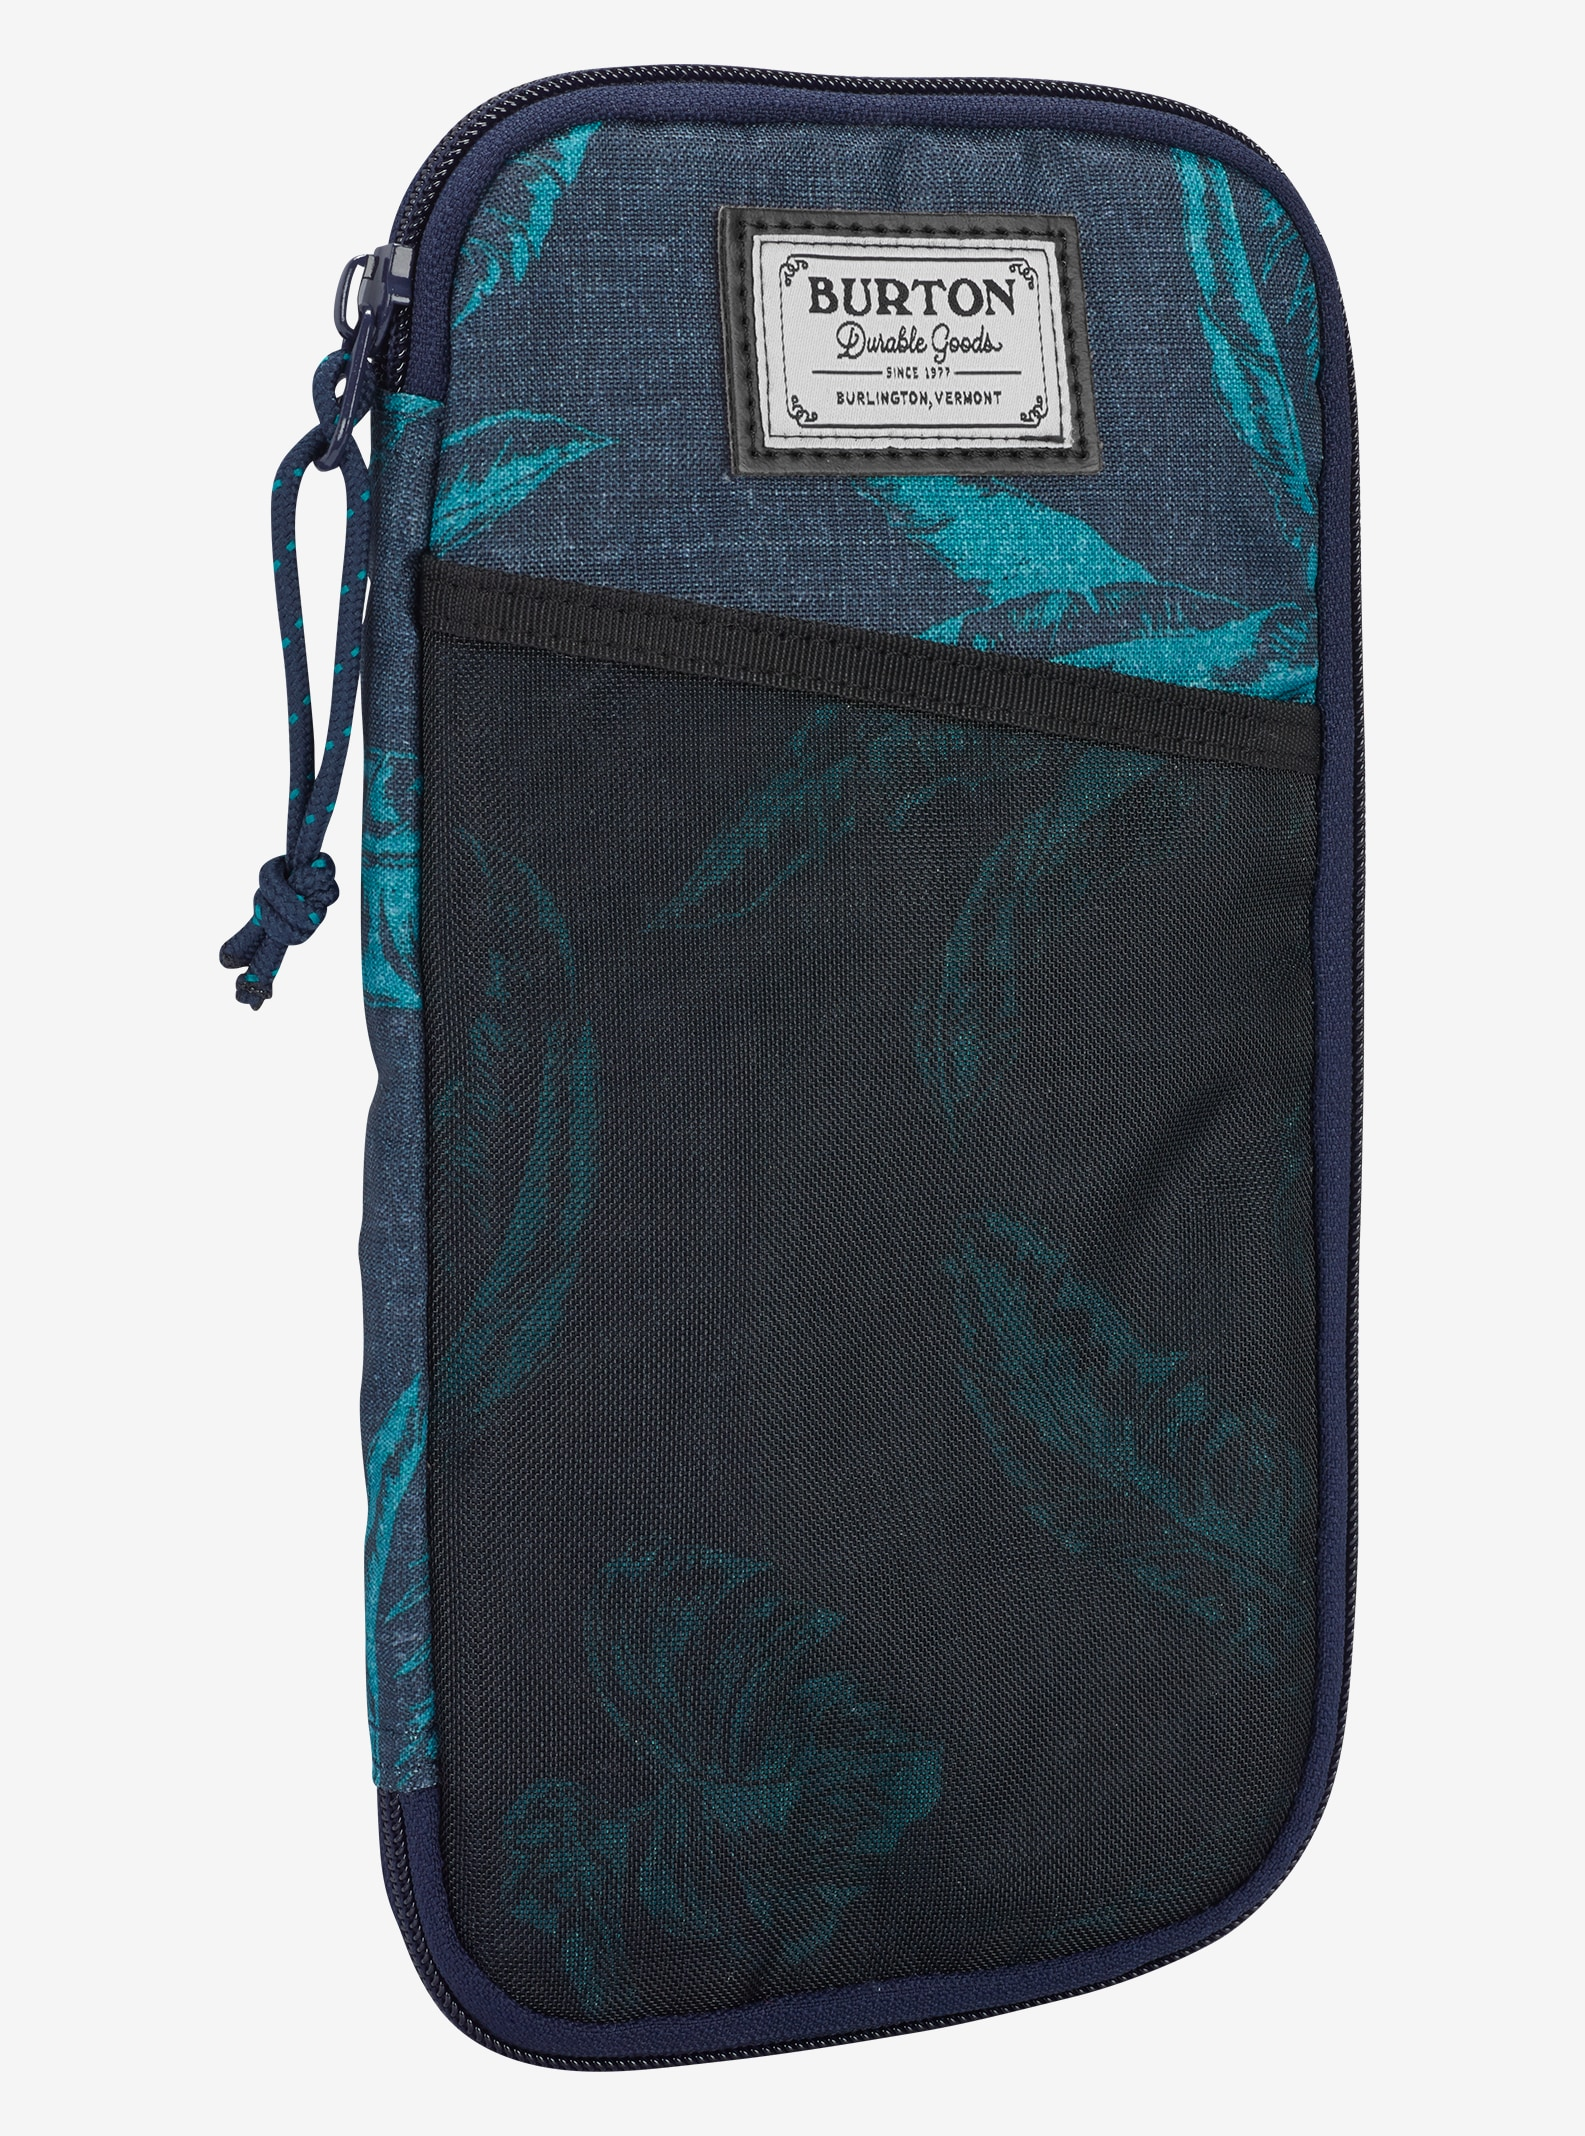 Burton Co-Pilot Travel Case shown in Tropical Print